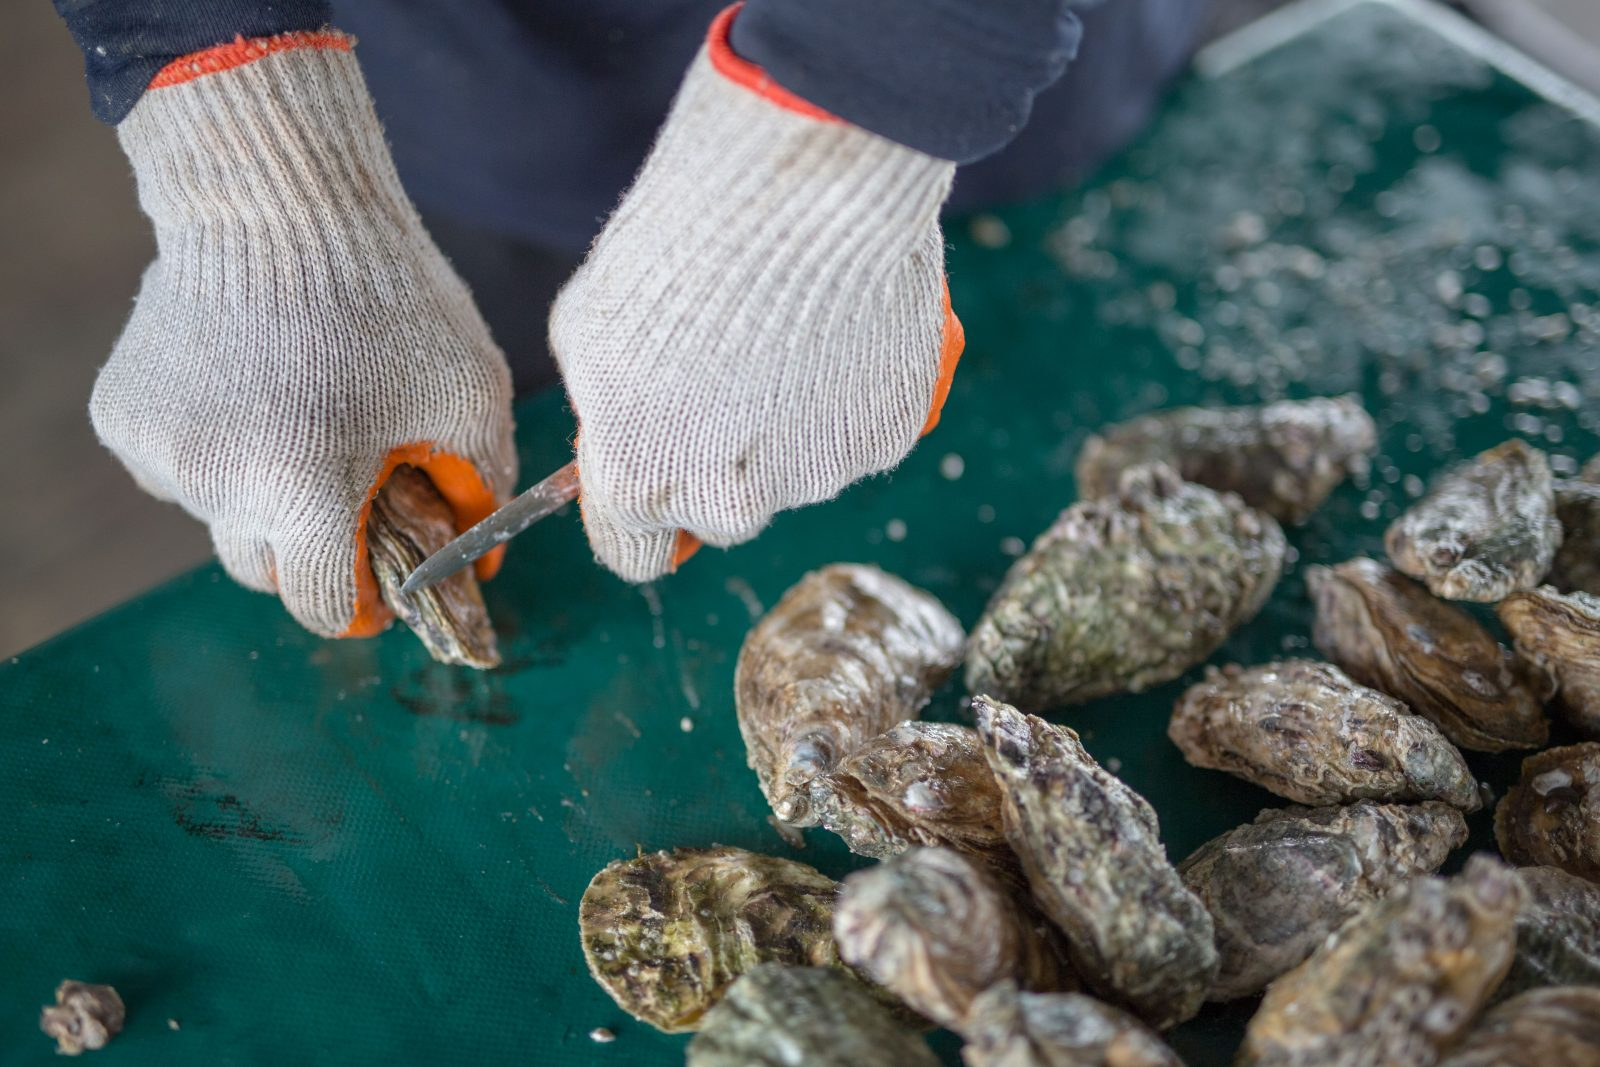 Want a taste of freshly-shucked oysters?